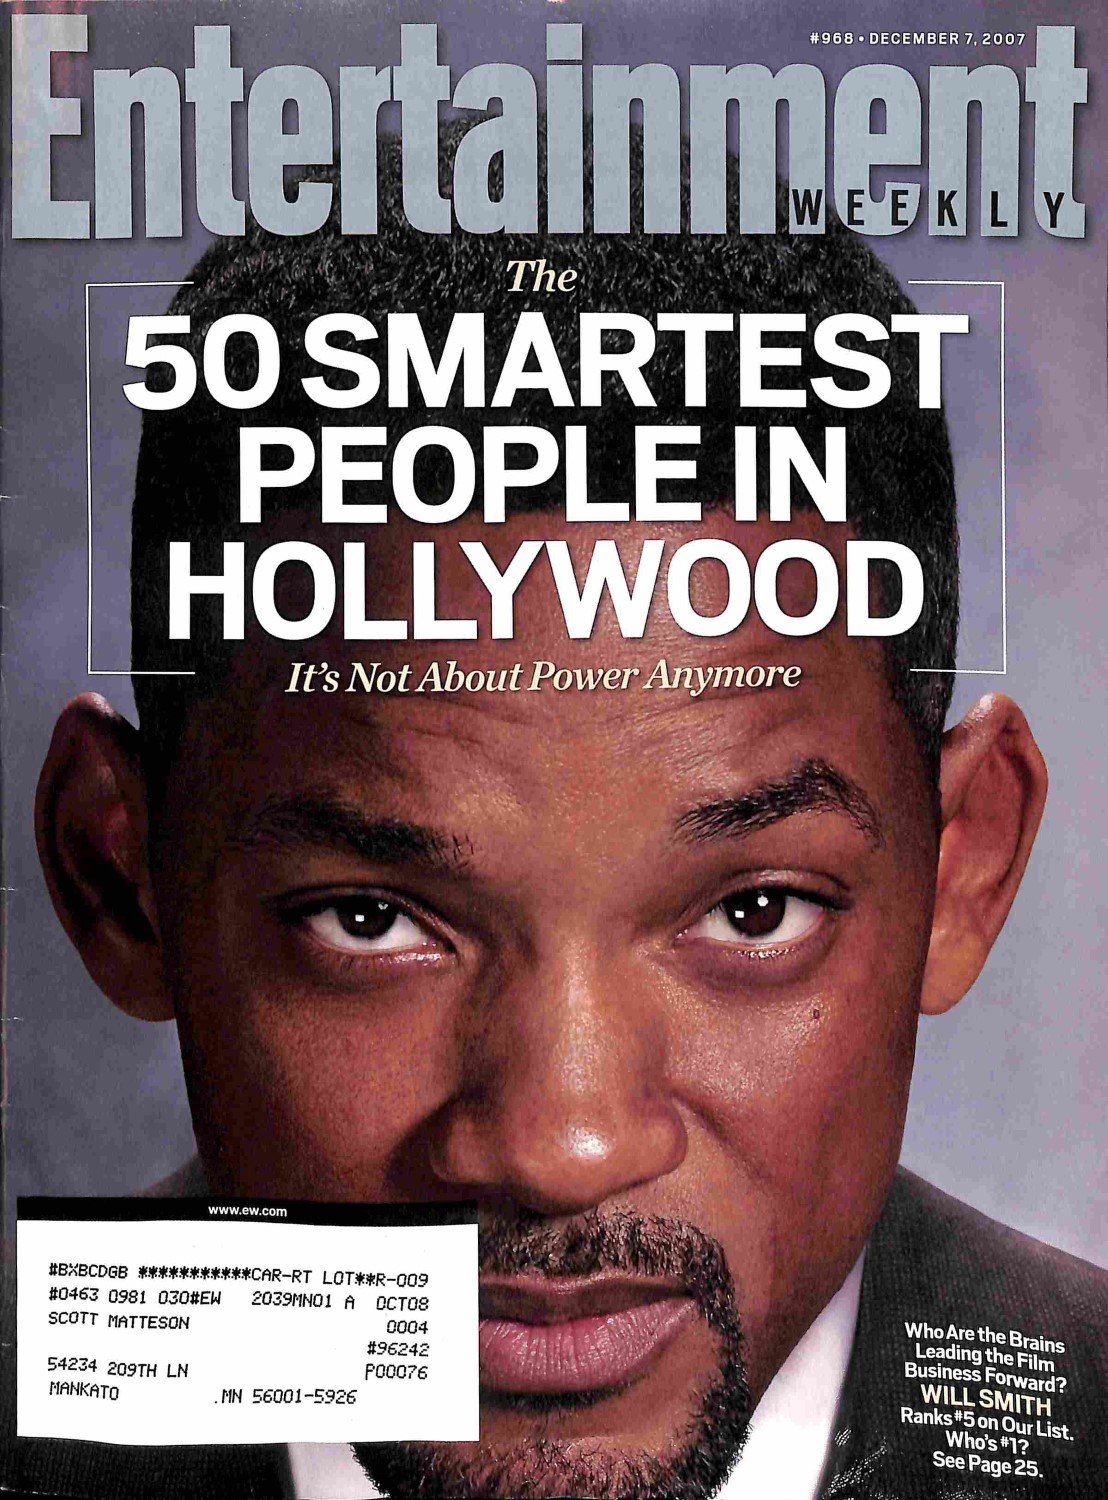 Download Entertainment Weekly December 7 2007 Will Smith, The 50 Smartest People in Hollywood (#968) pdf epub